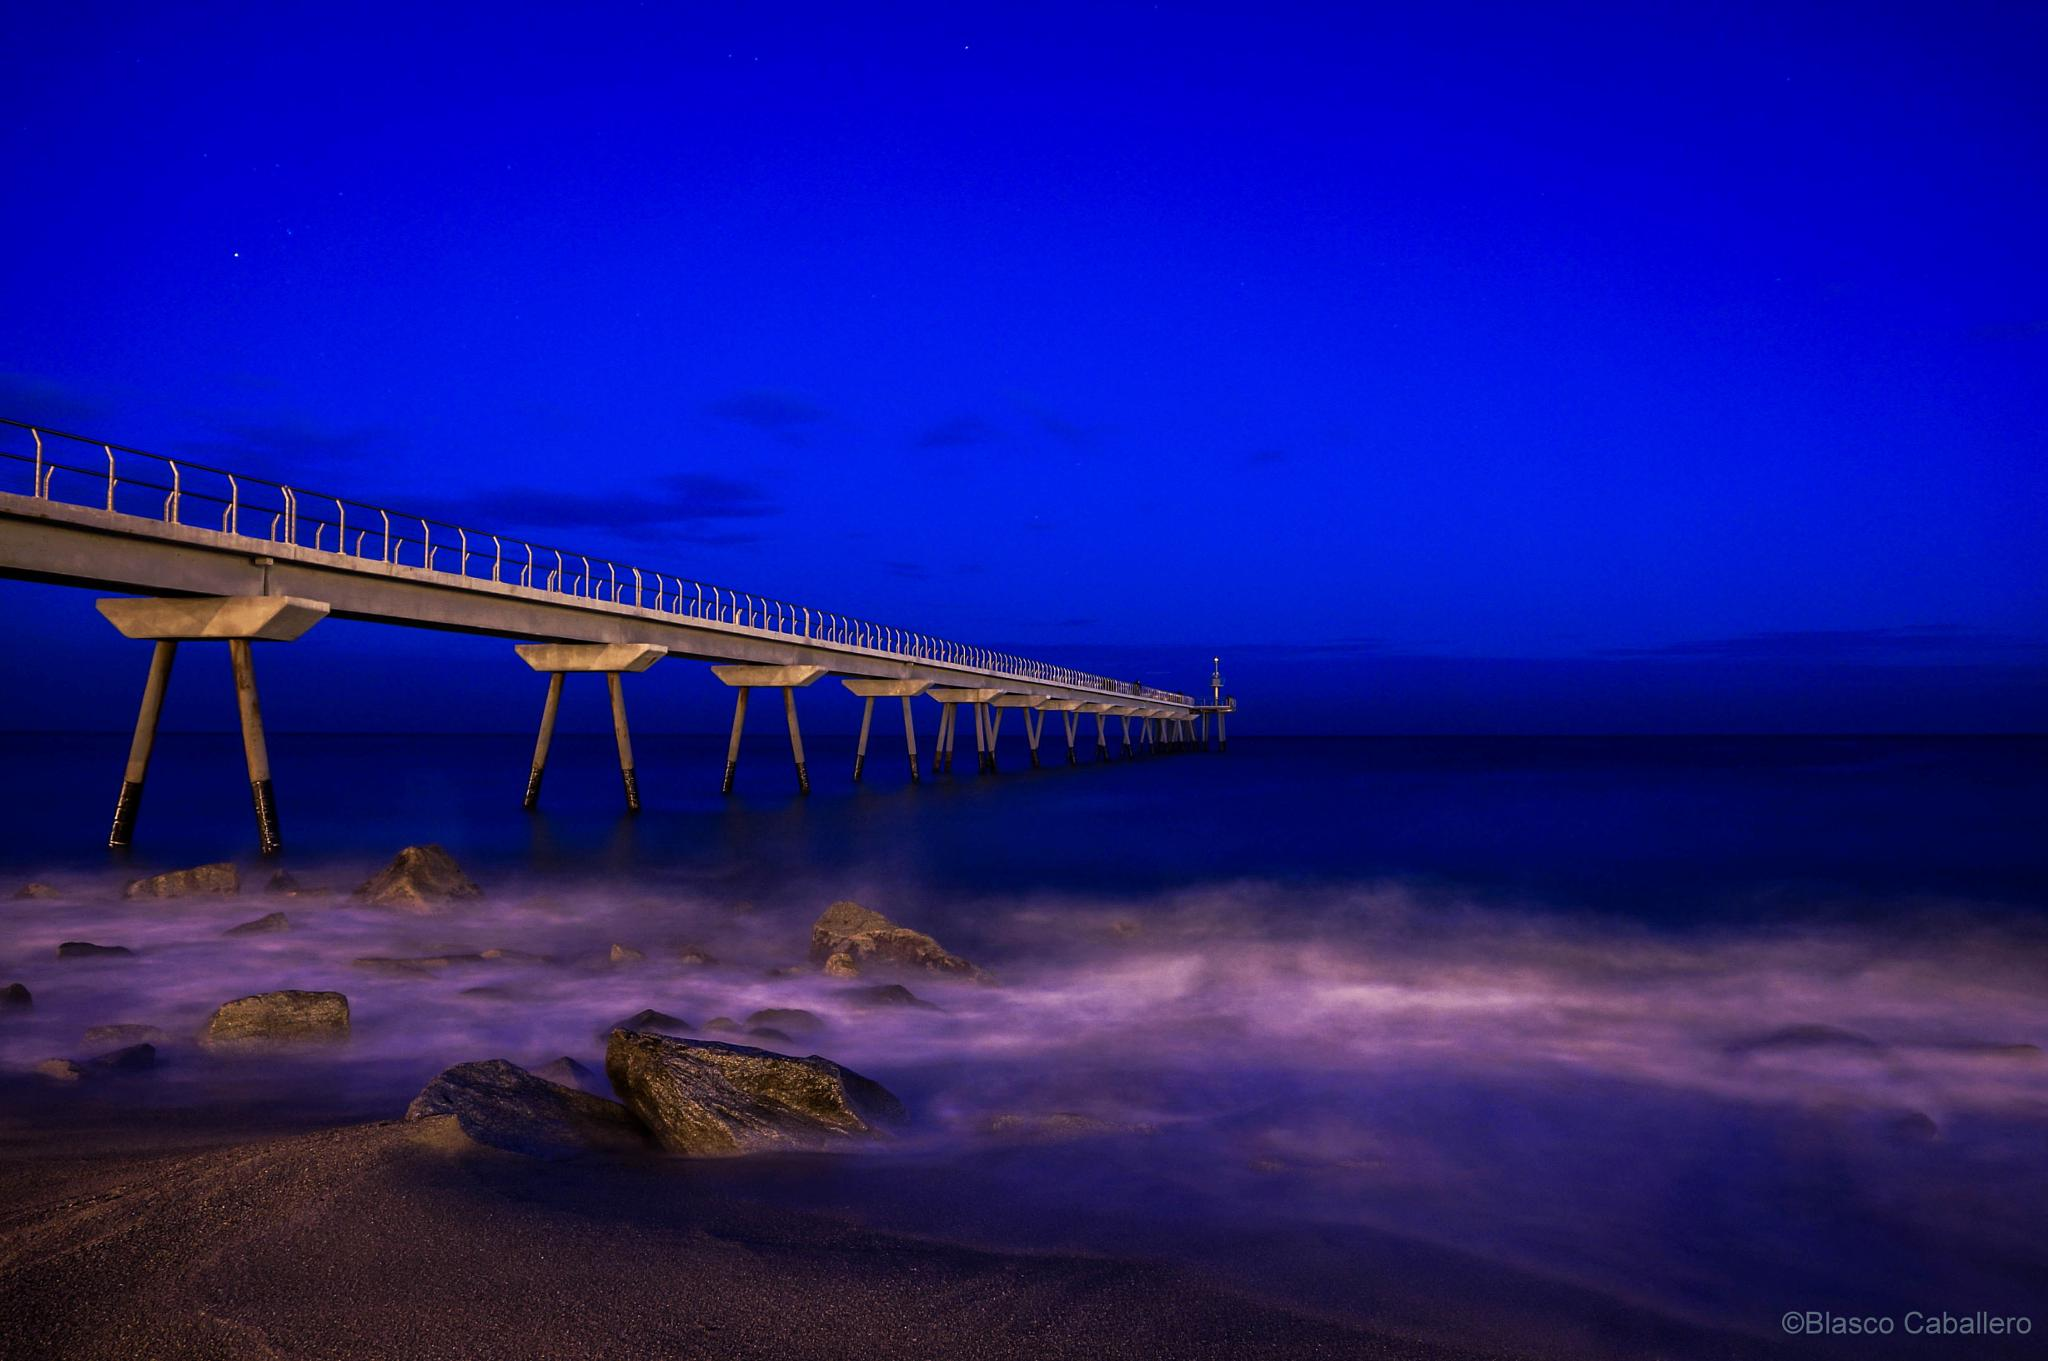 Blue Hour at Pont del Petroli by Blasco Caballero